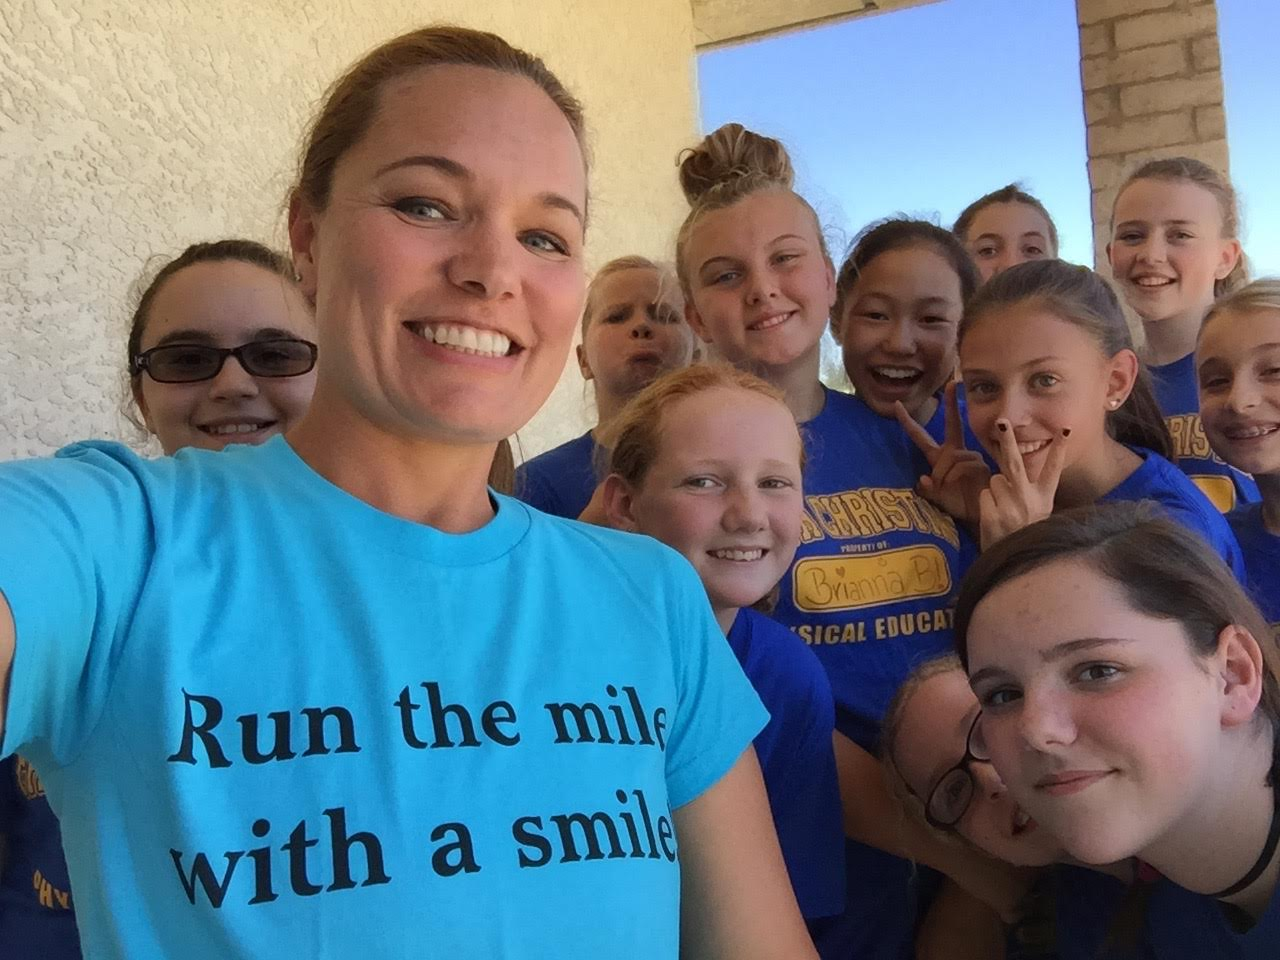 Mrs Payne's 7th grade girls' PE class LOVED running the mile...